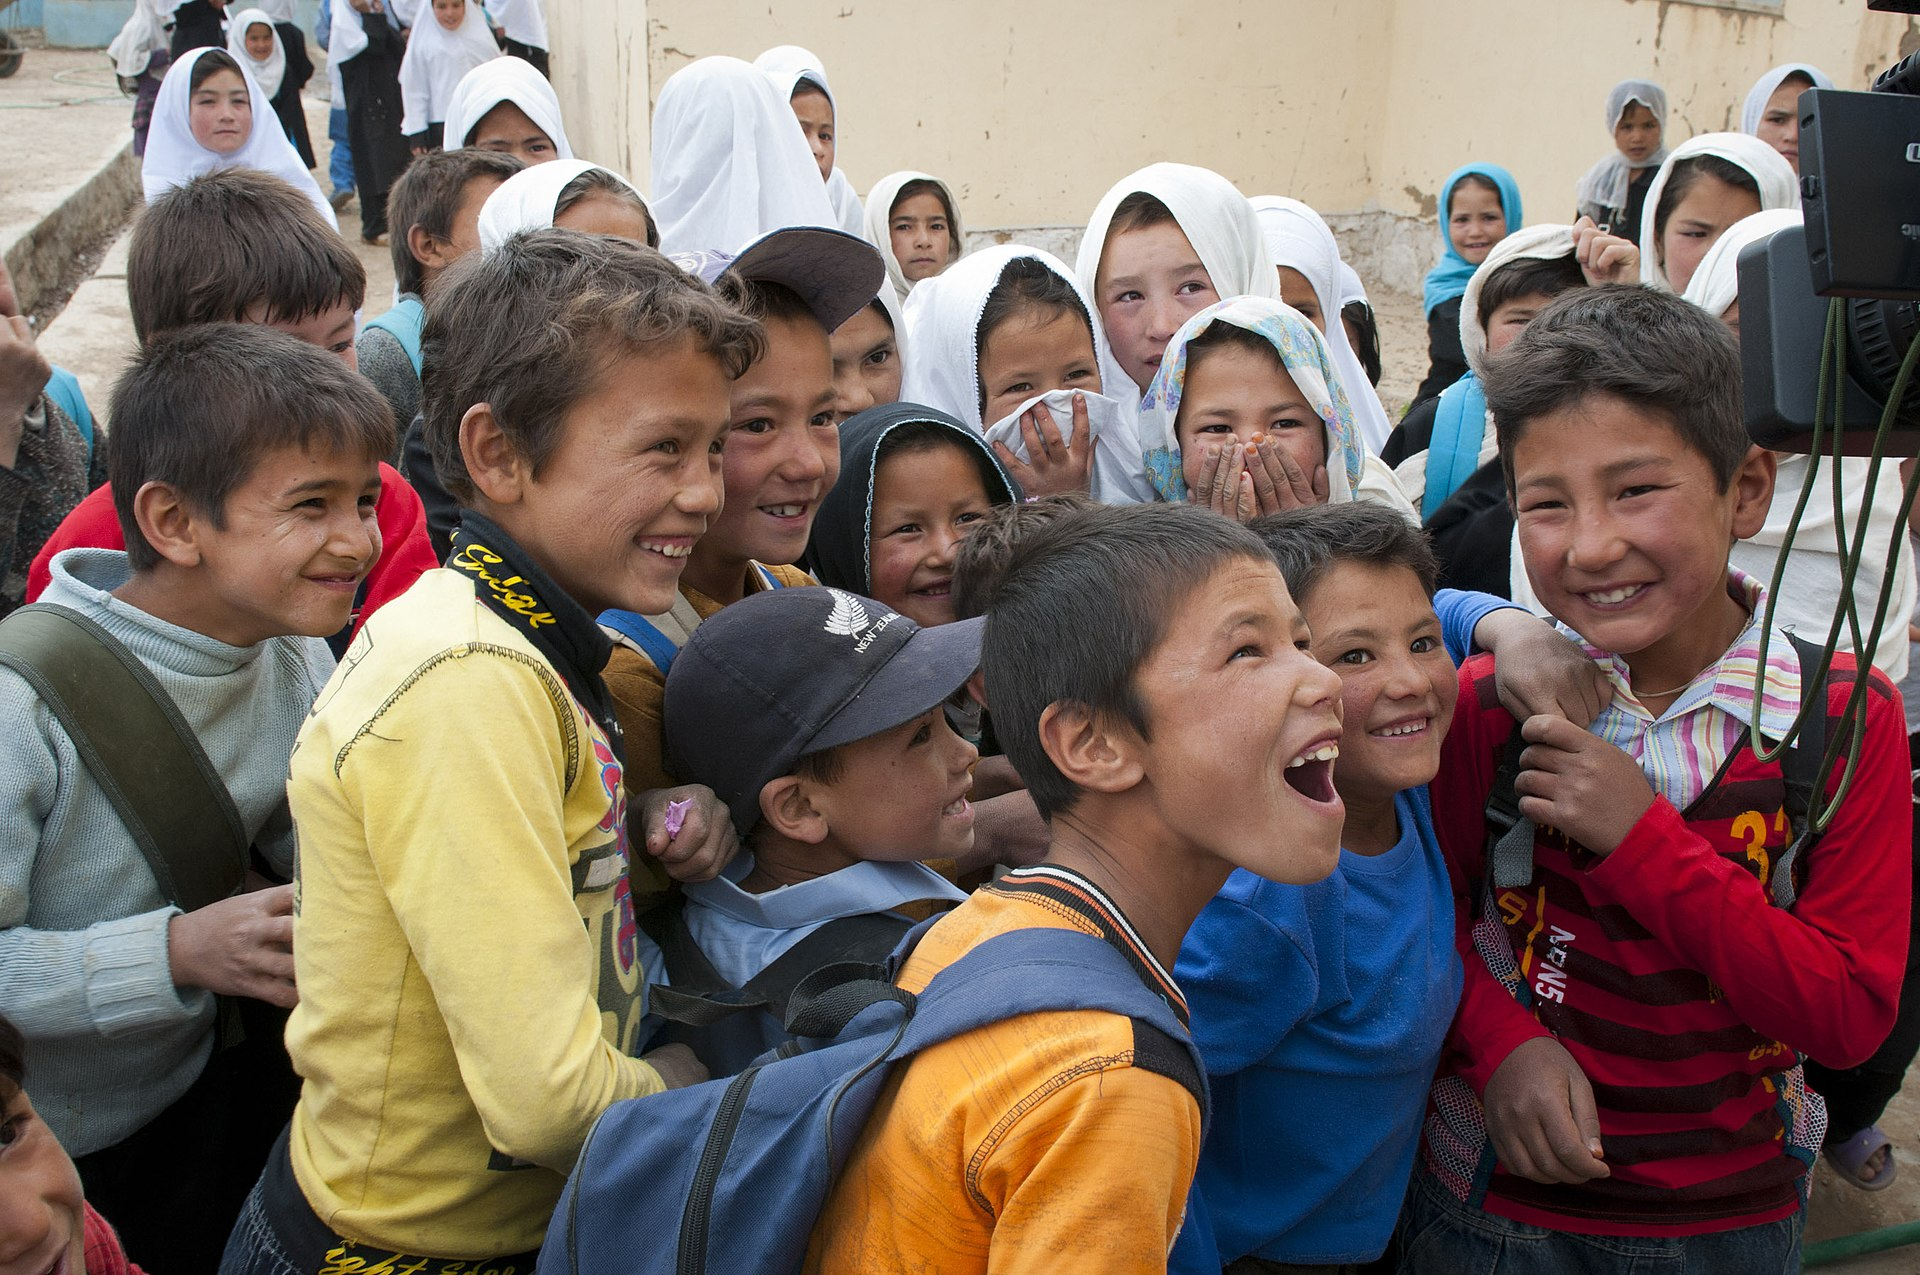 afghan bamyan hazaras students afghanistan hazara asian children schools mongols wikipedia province central input khans any origin between link south